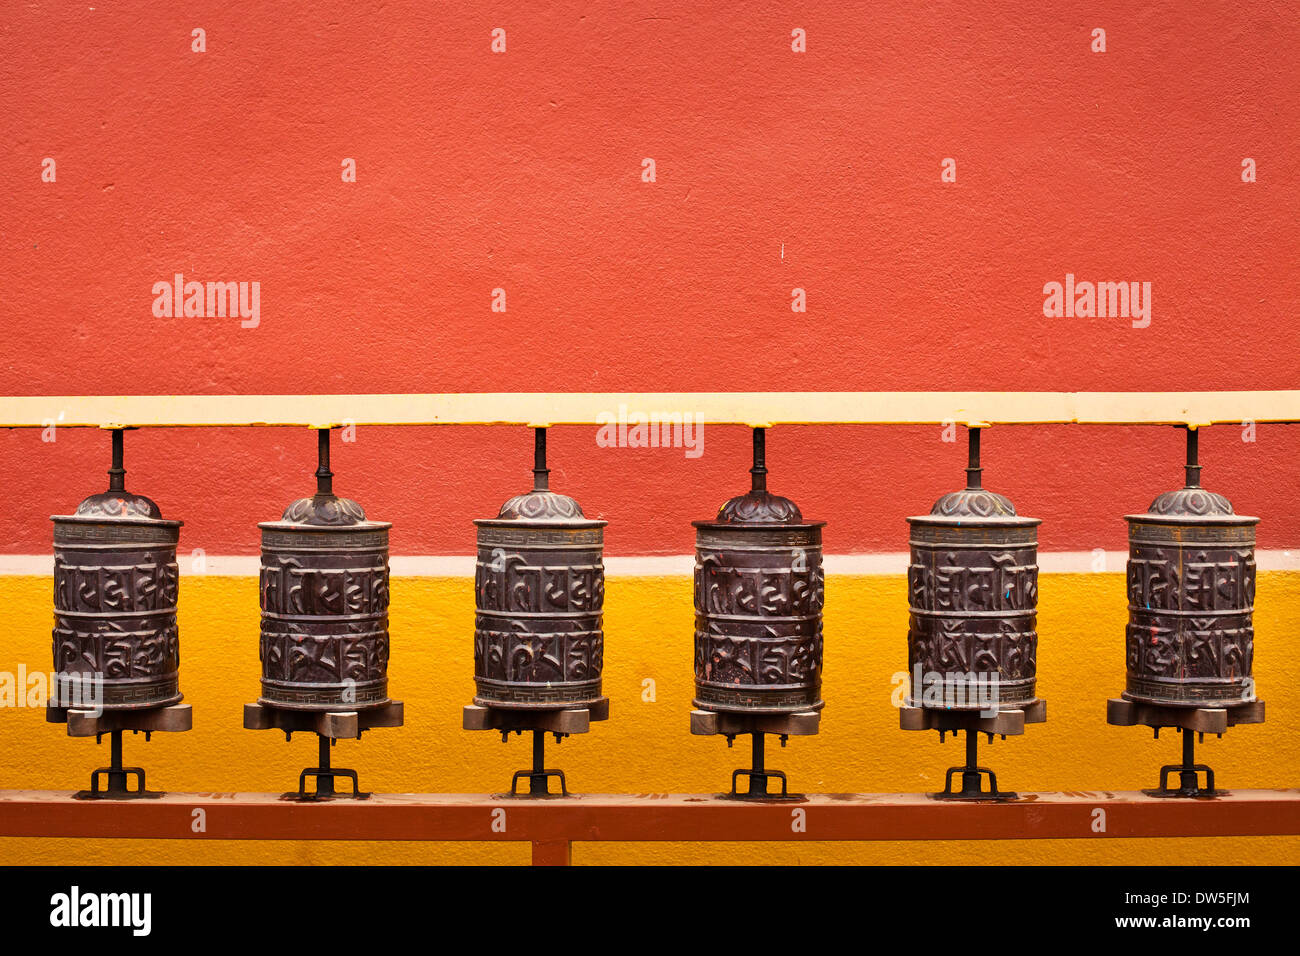 background about buddhism, prayer mills in buddhist monastery - Stock Image